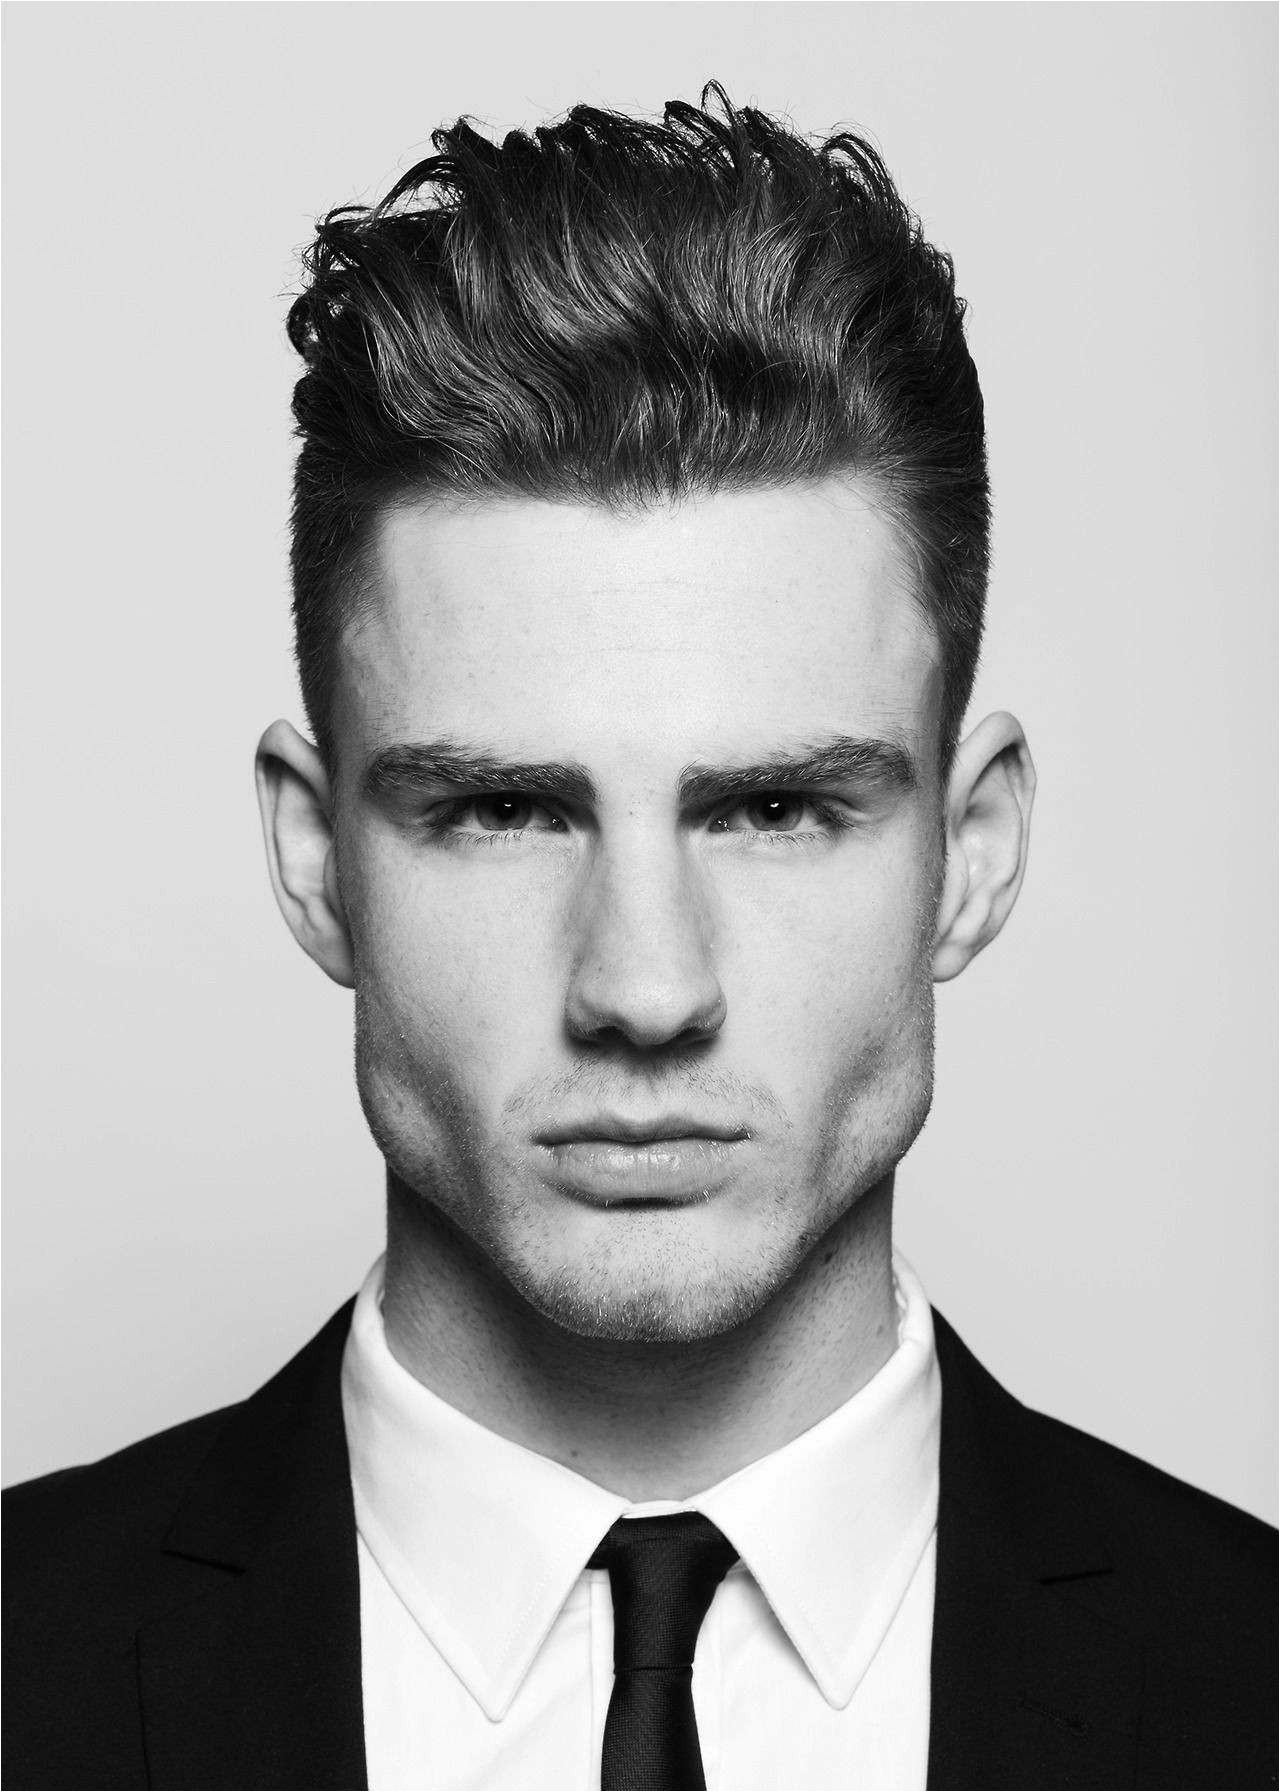 Hairstyles for Curly Hair for School Inspirational Hairstyles Grey Hair Awesome Hairstyles Men 0d Bright In